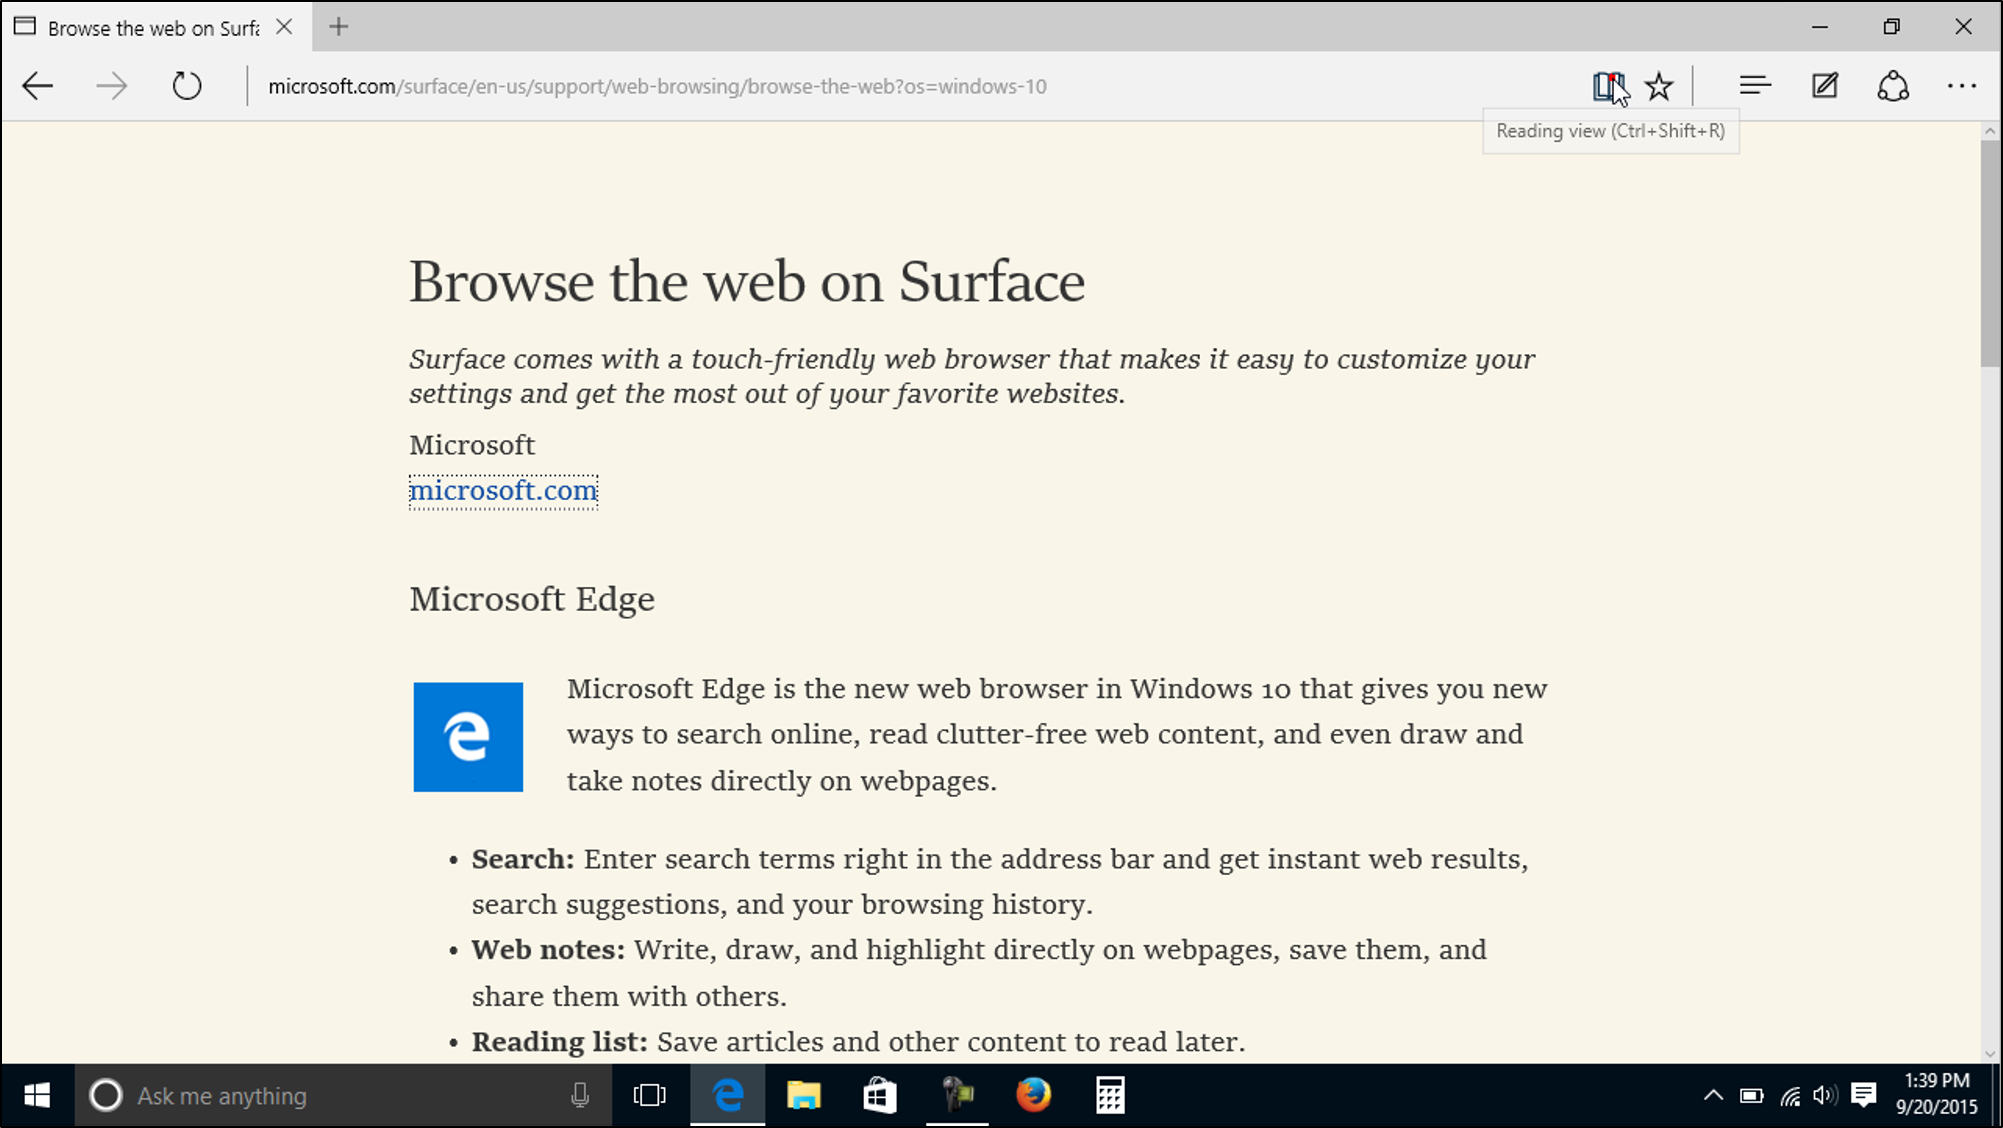 Google Chrome browser to get Edge's Reading View on the